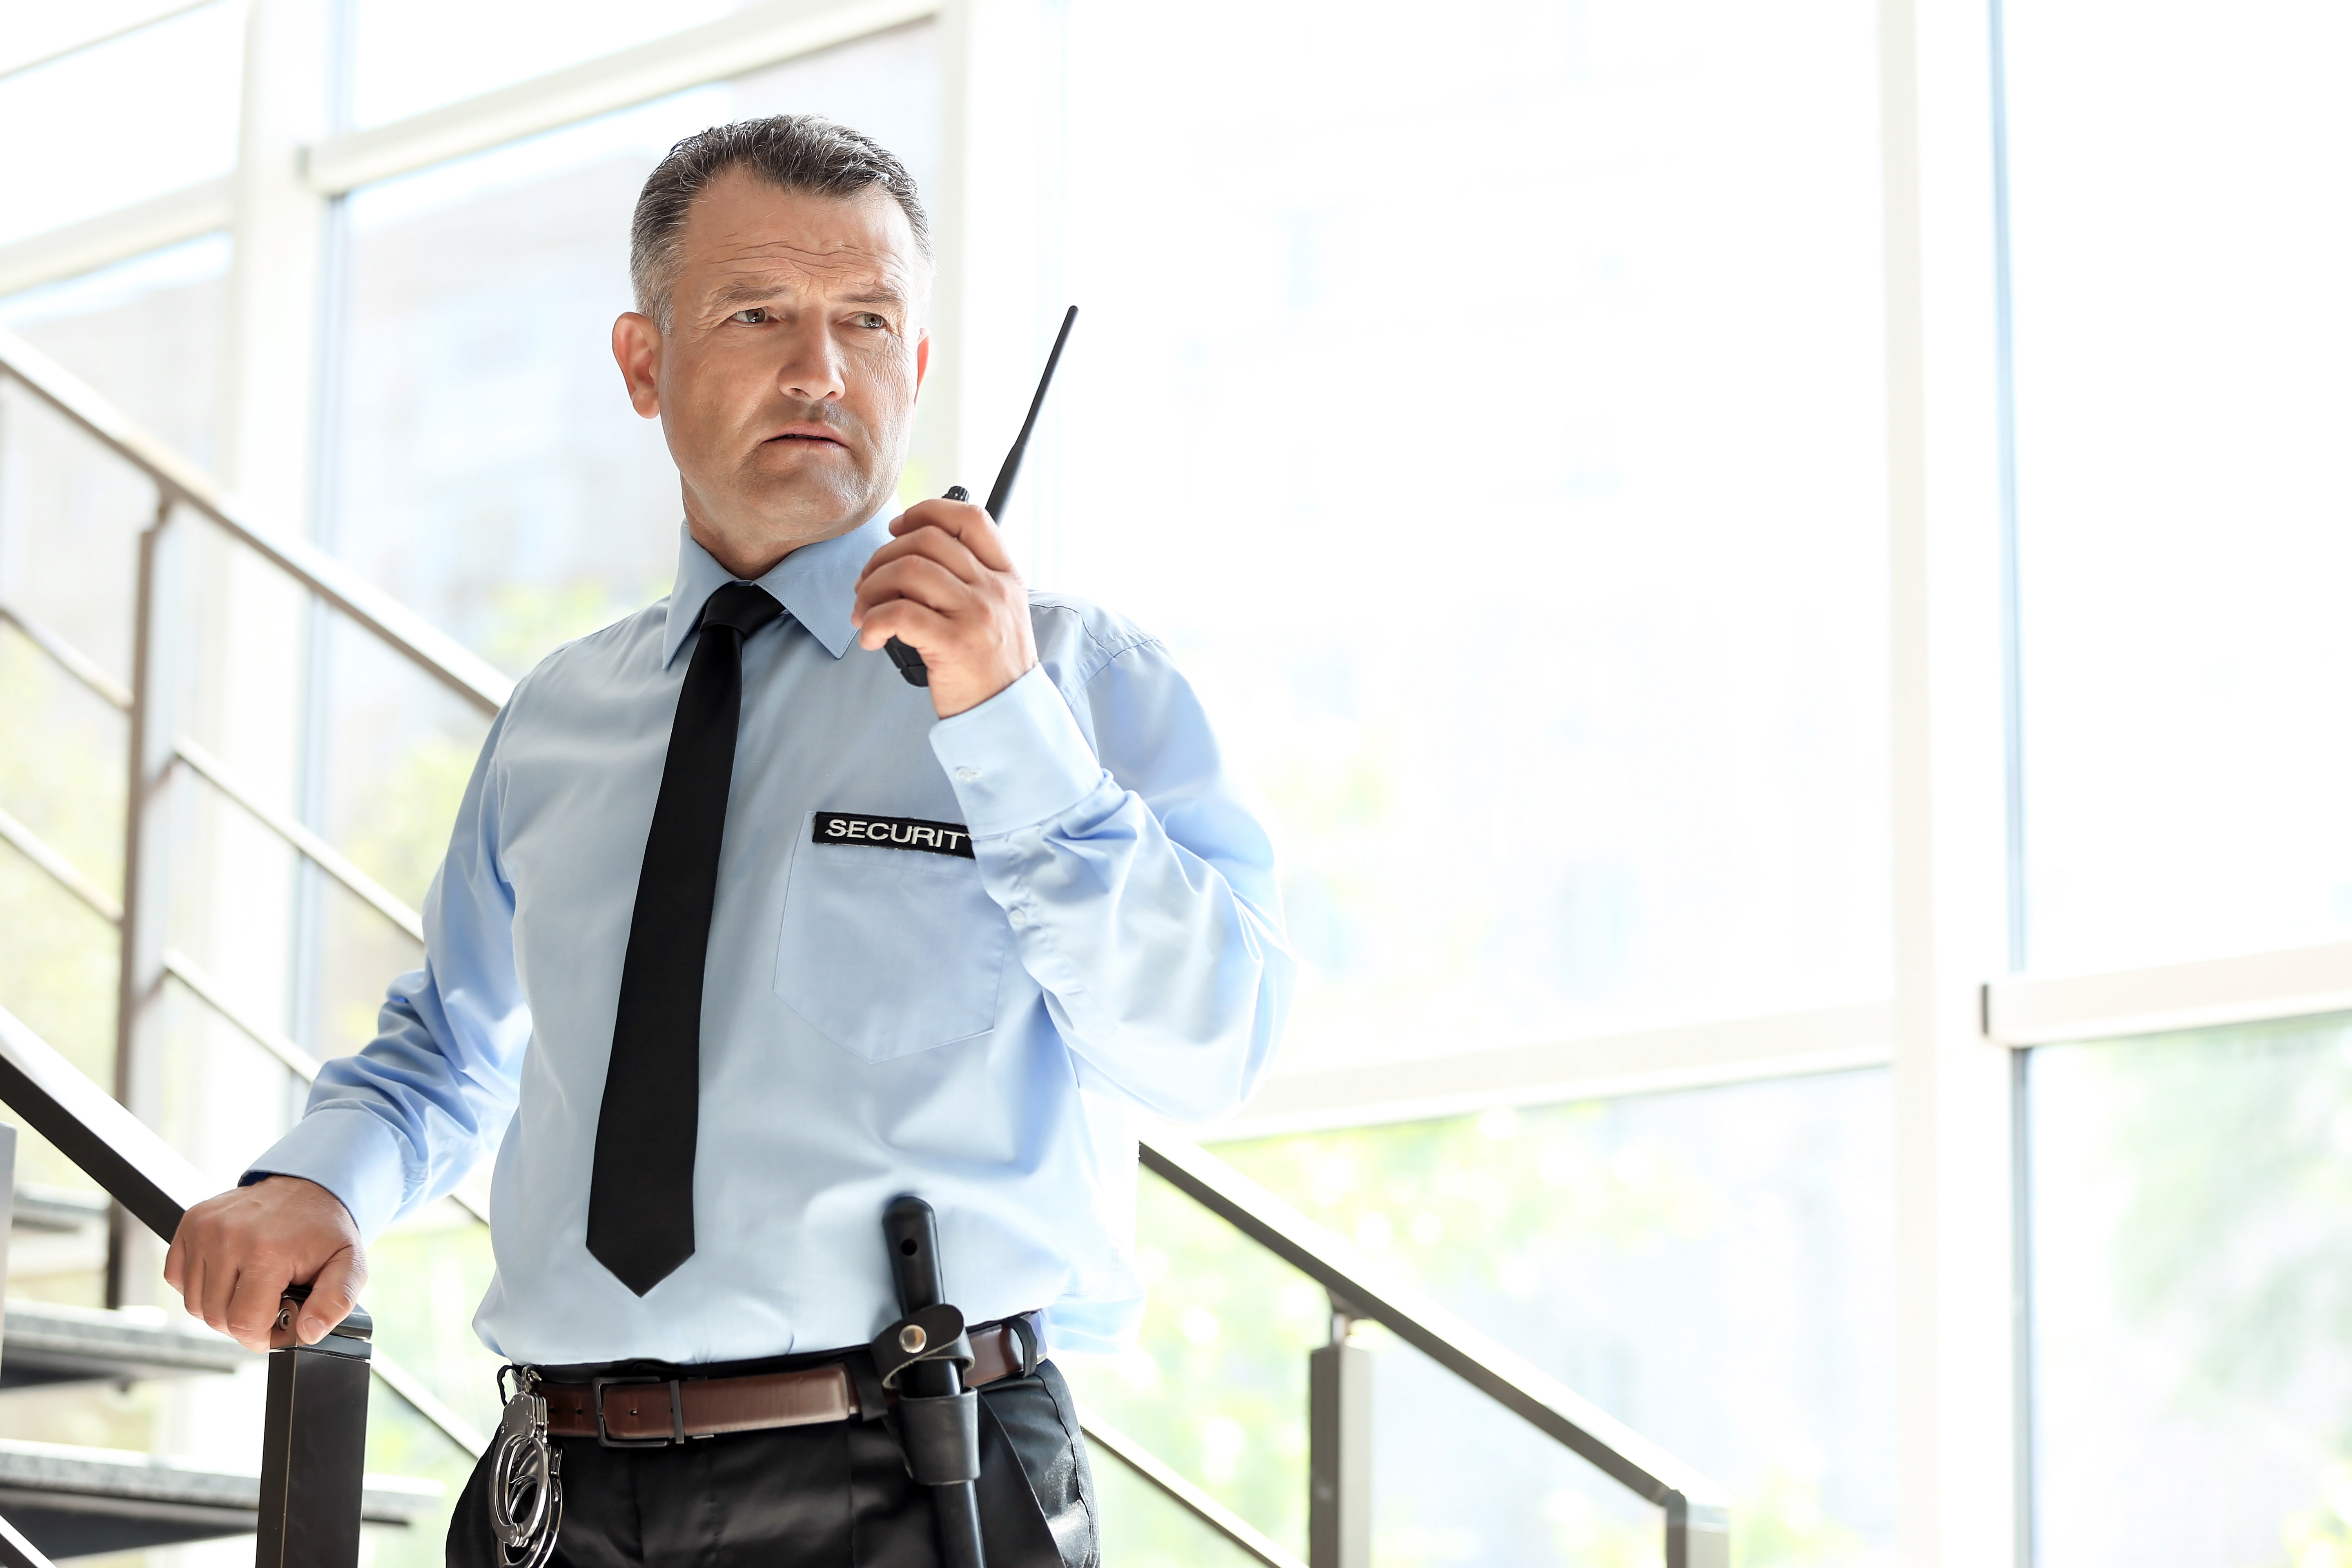 Stratton Security Offers Top of the Line Security Services for All Clients